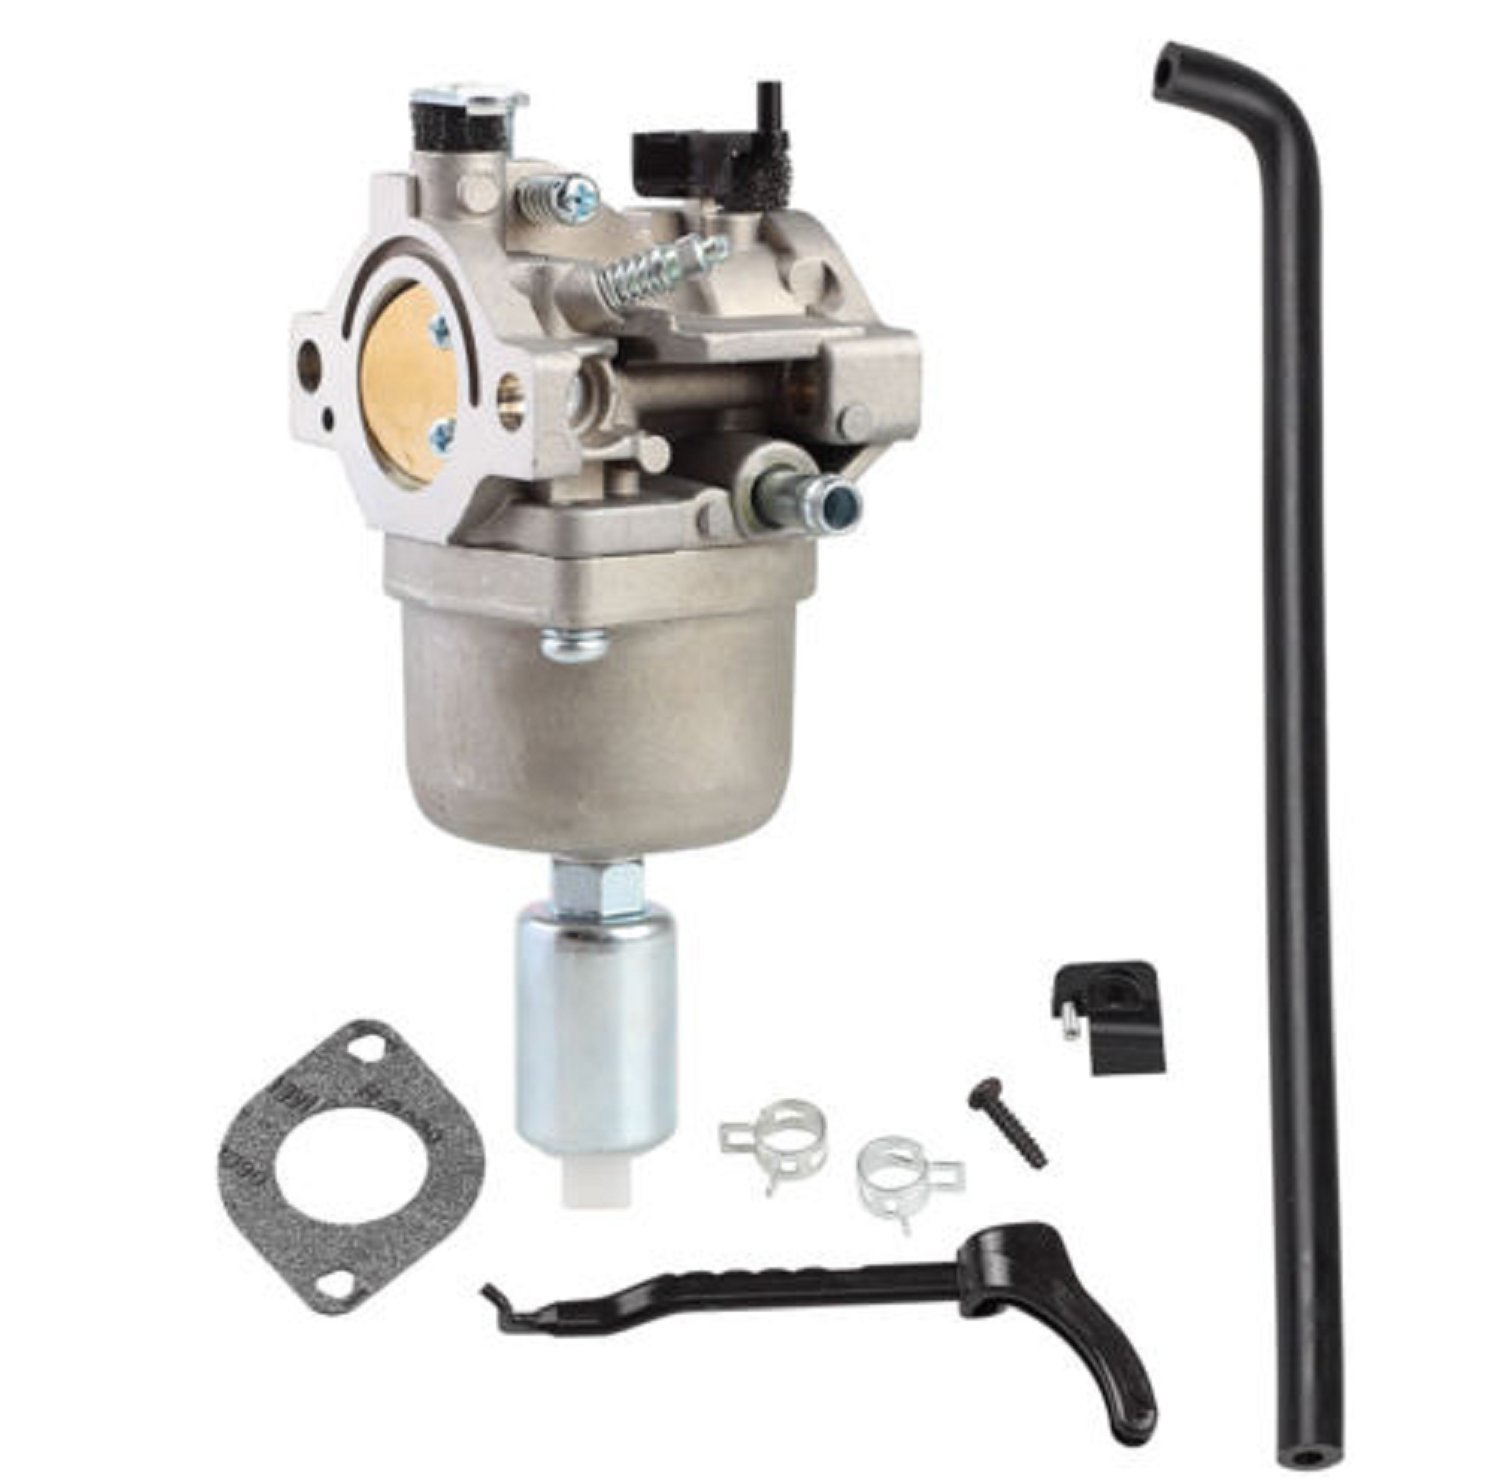 USA Premium Store Carburetor Carb For Craftsman LT1000 LT2000 DLS3500 16HP 18HP 20HP Engine